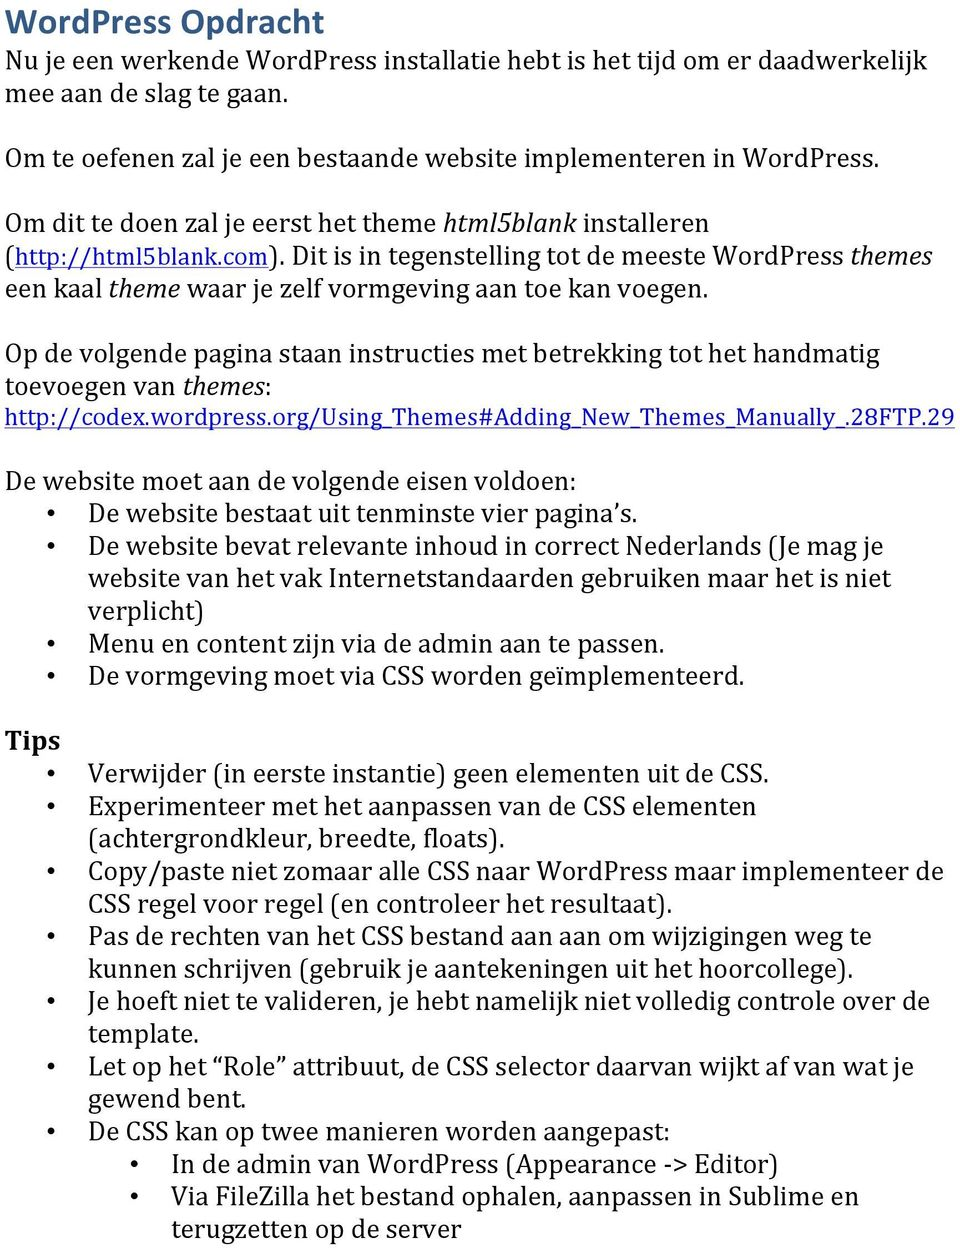 Op de volgende pagina staan instructies met betrekking tot het handmatig toevoegen van themes: http://codex.wordpress.org/using_themes#adding_new_themes_manually_.28ftp.